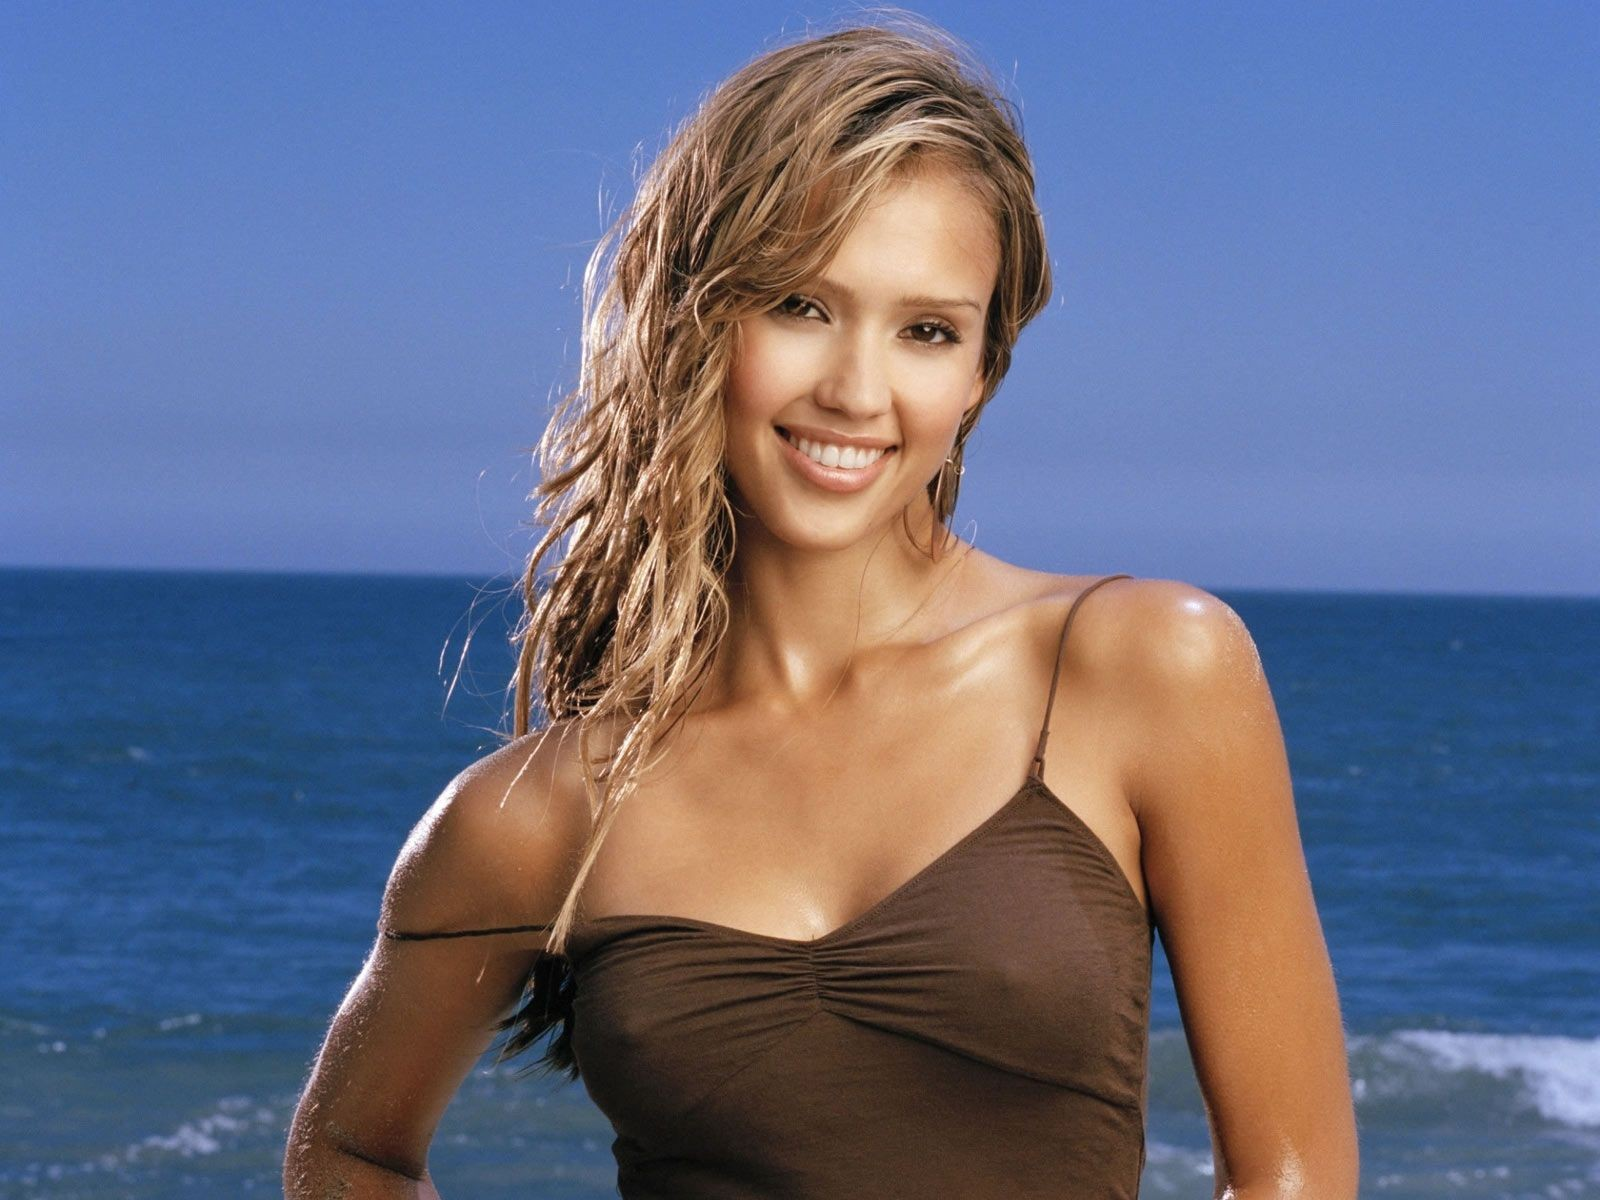 Jessica Alba On Beach